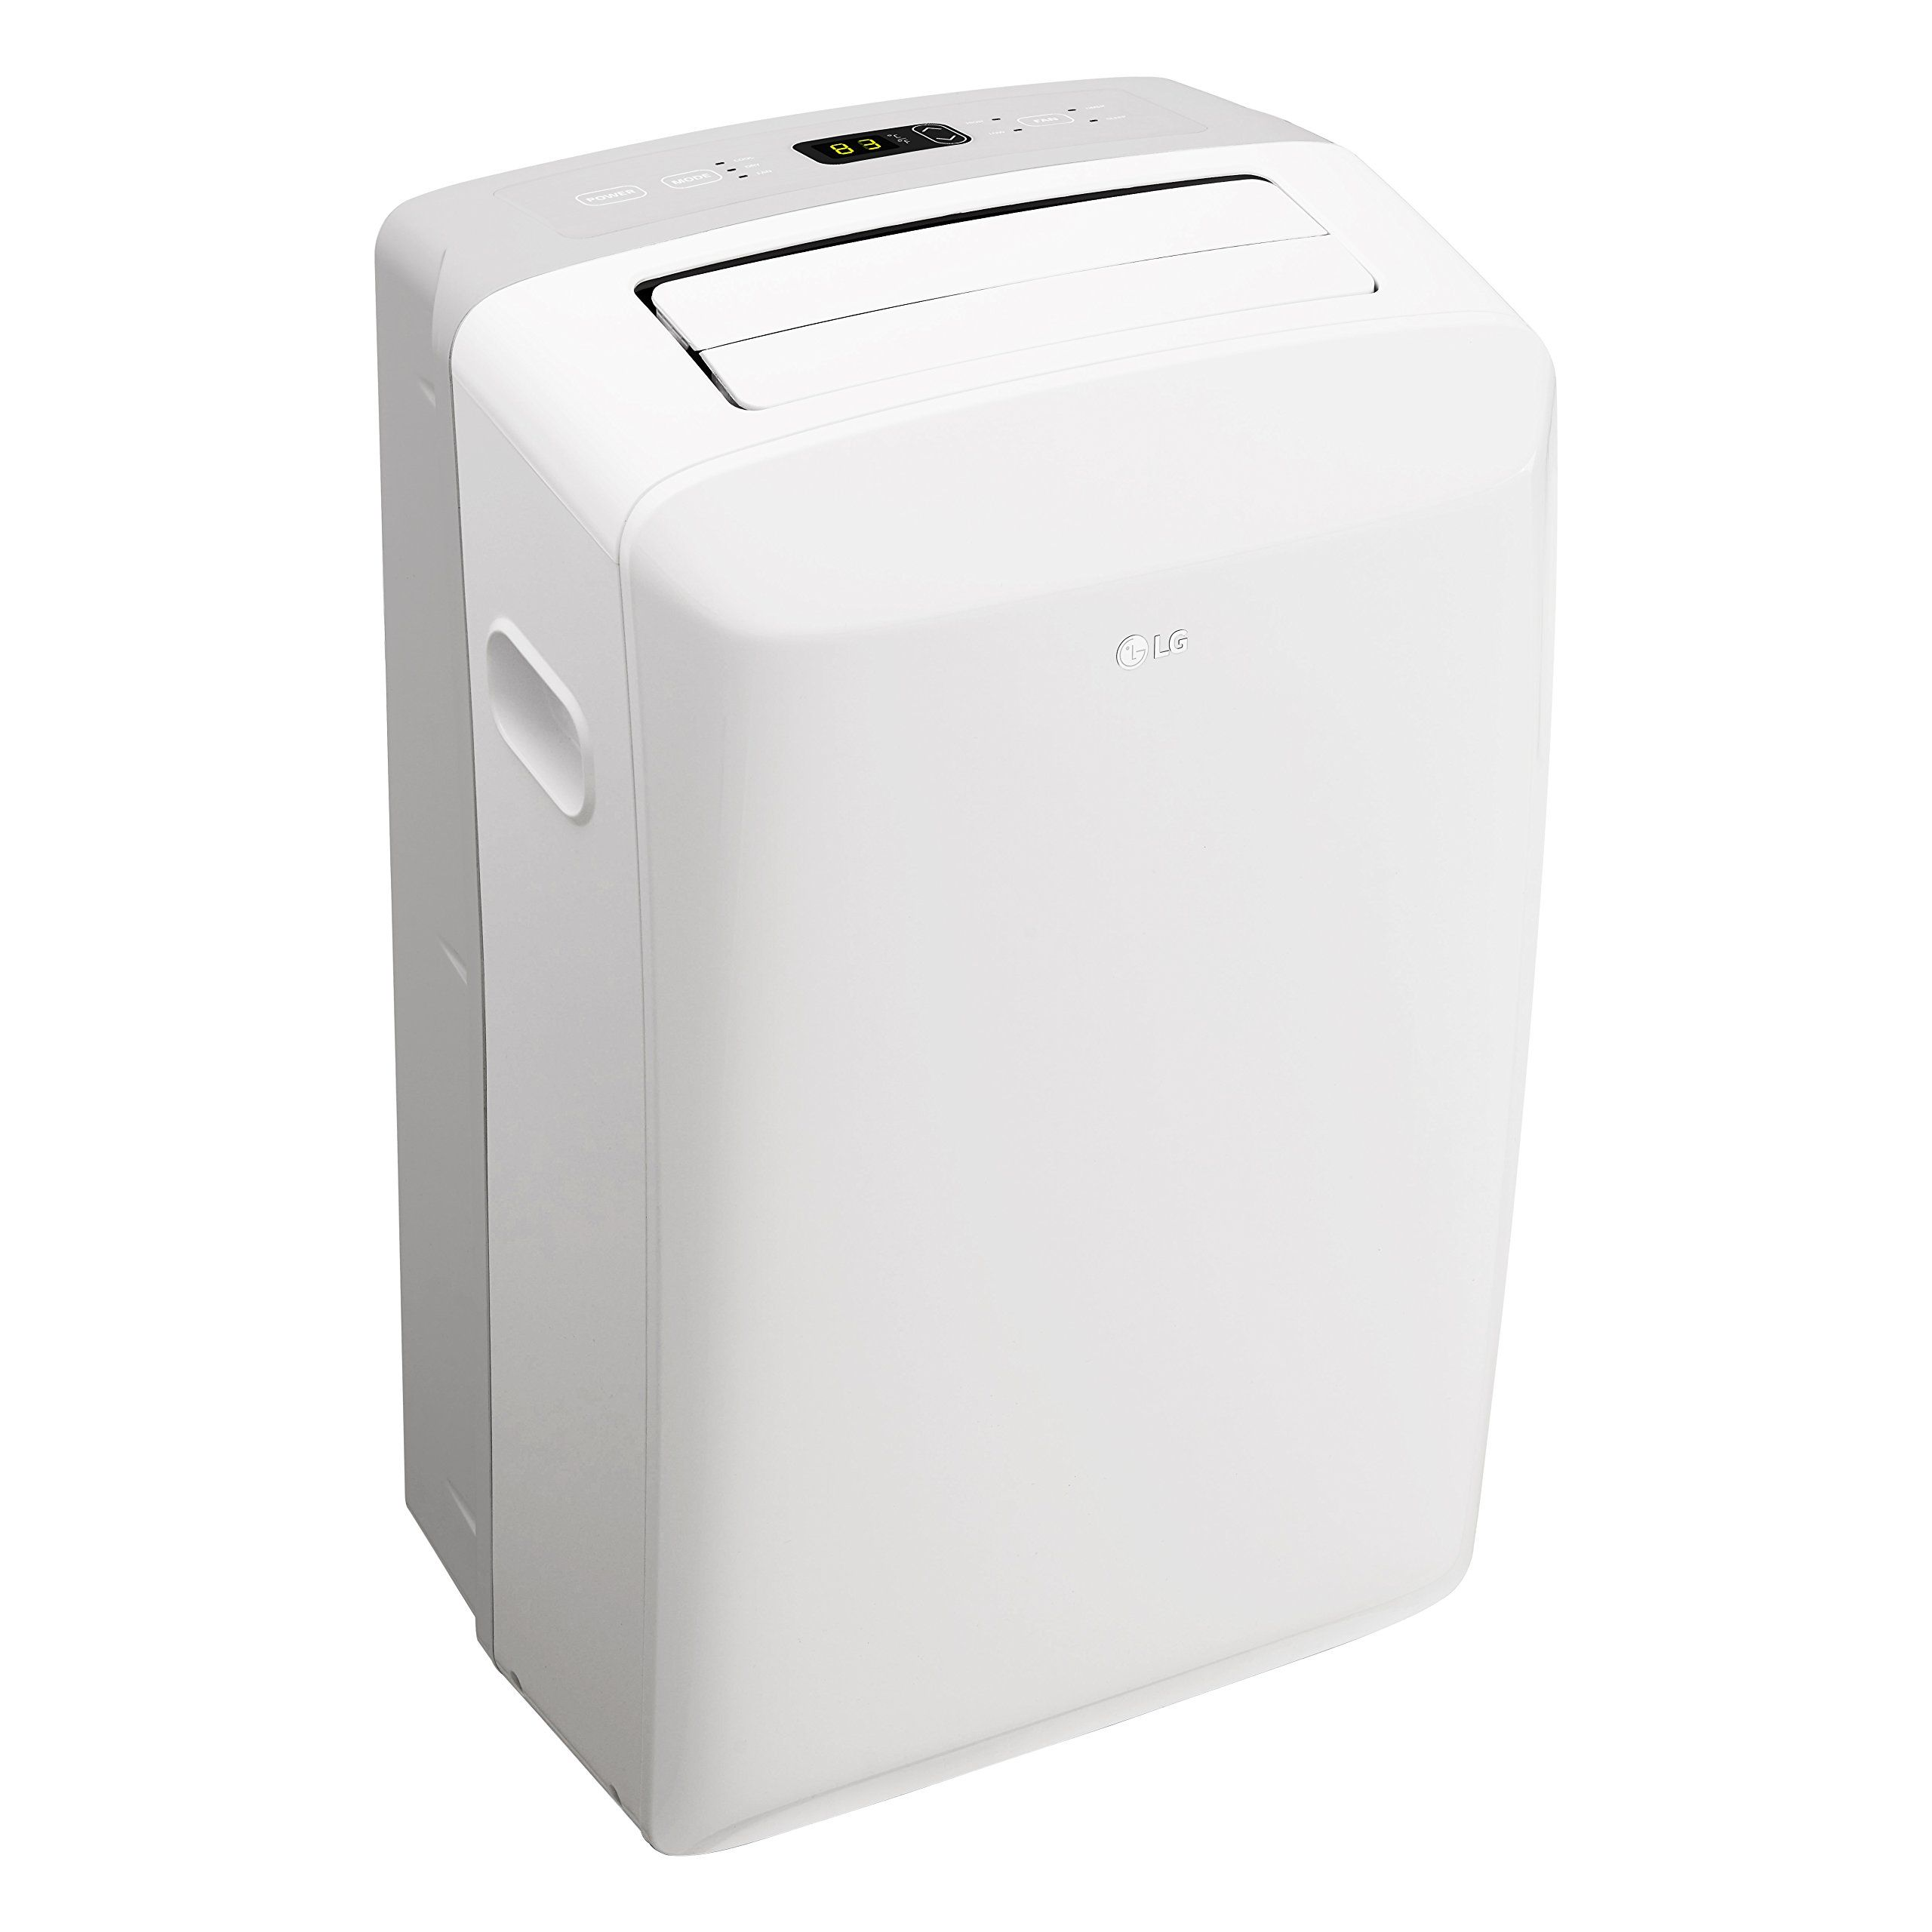 Lg Lp0817wsr 115v Portable Air Conditioner With Remote Control In White For Rooms Up To 150s Portable Air Conditioner Portable Air Conditioners Air Conditioner